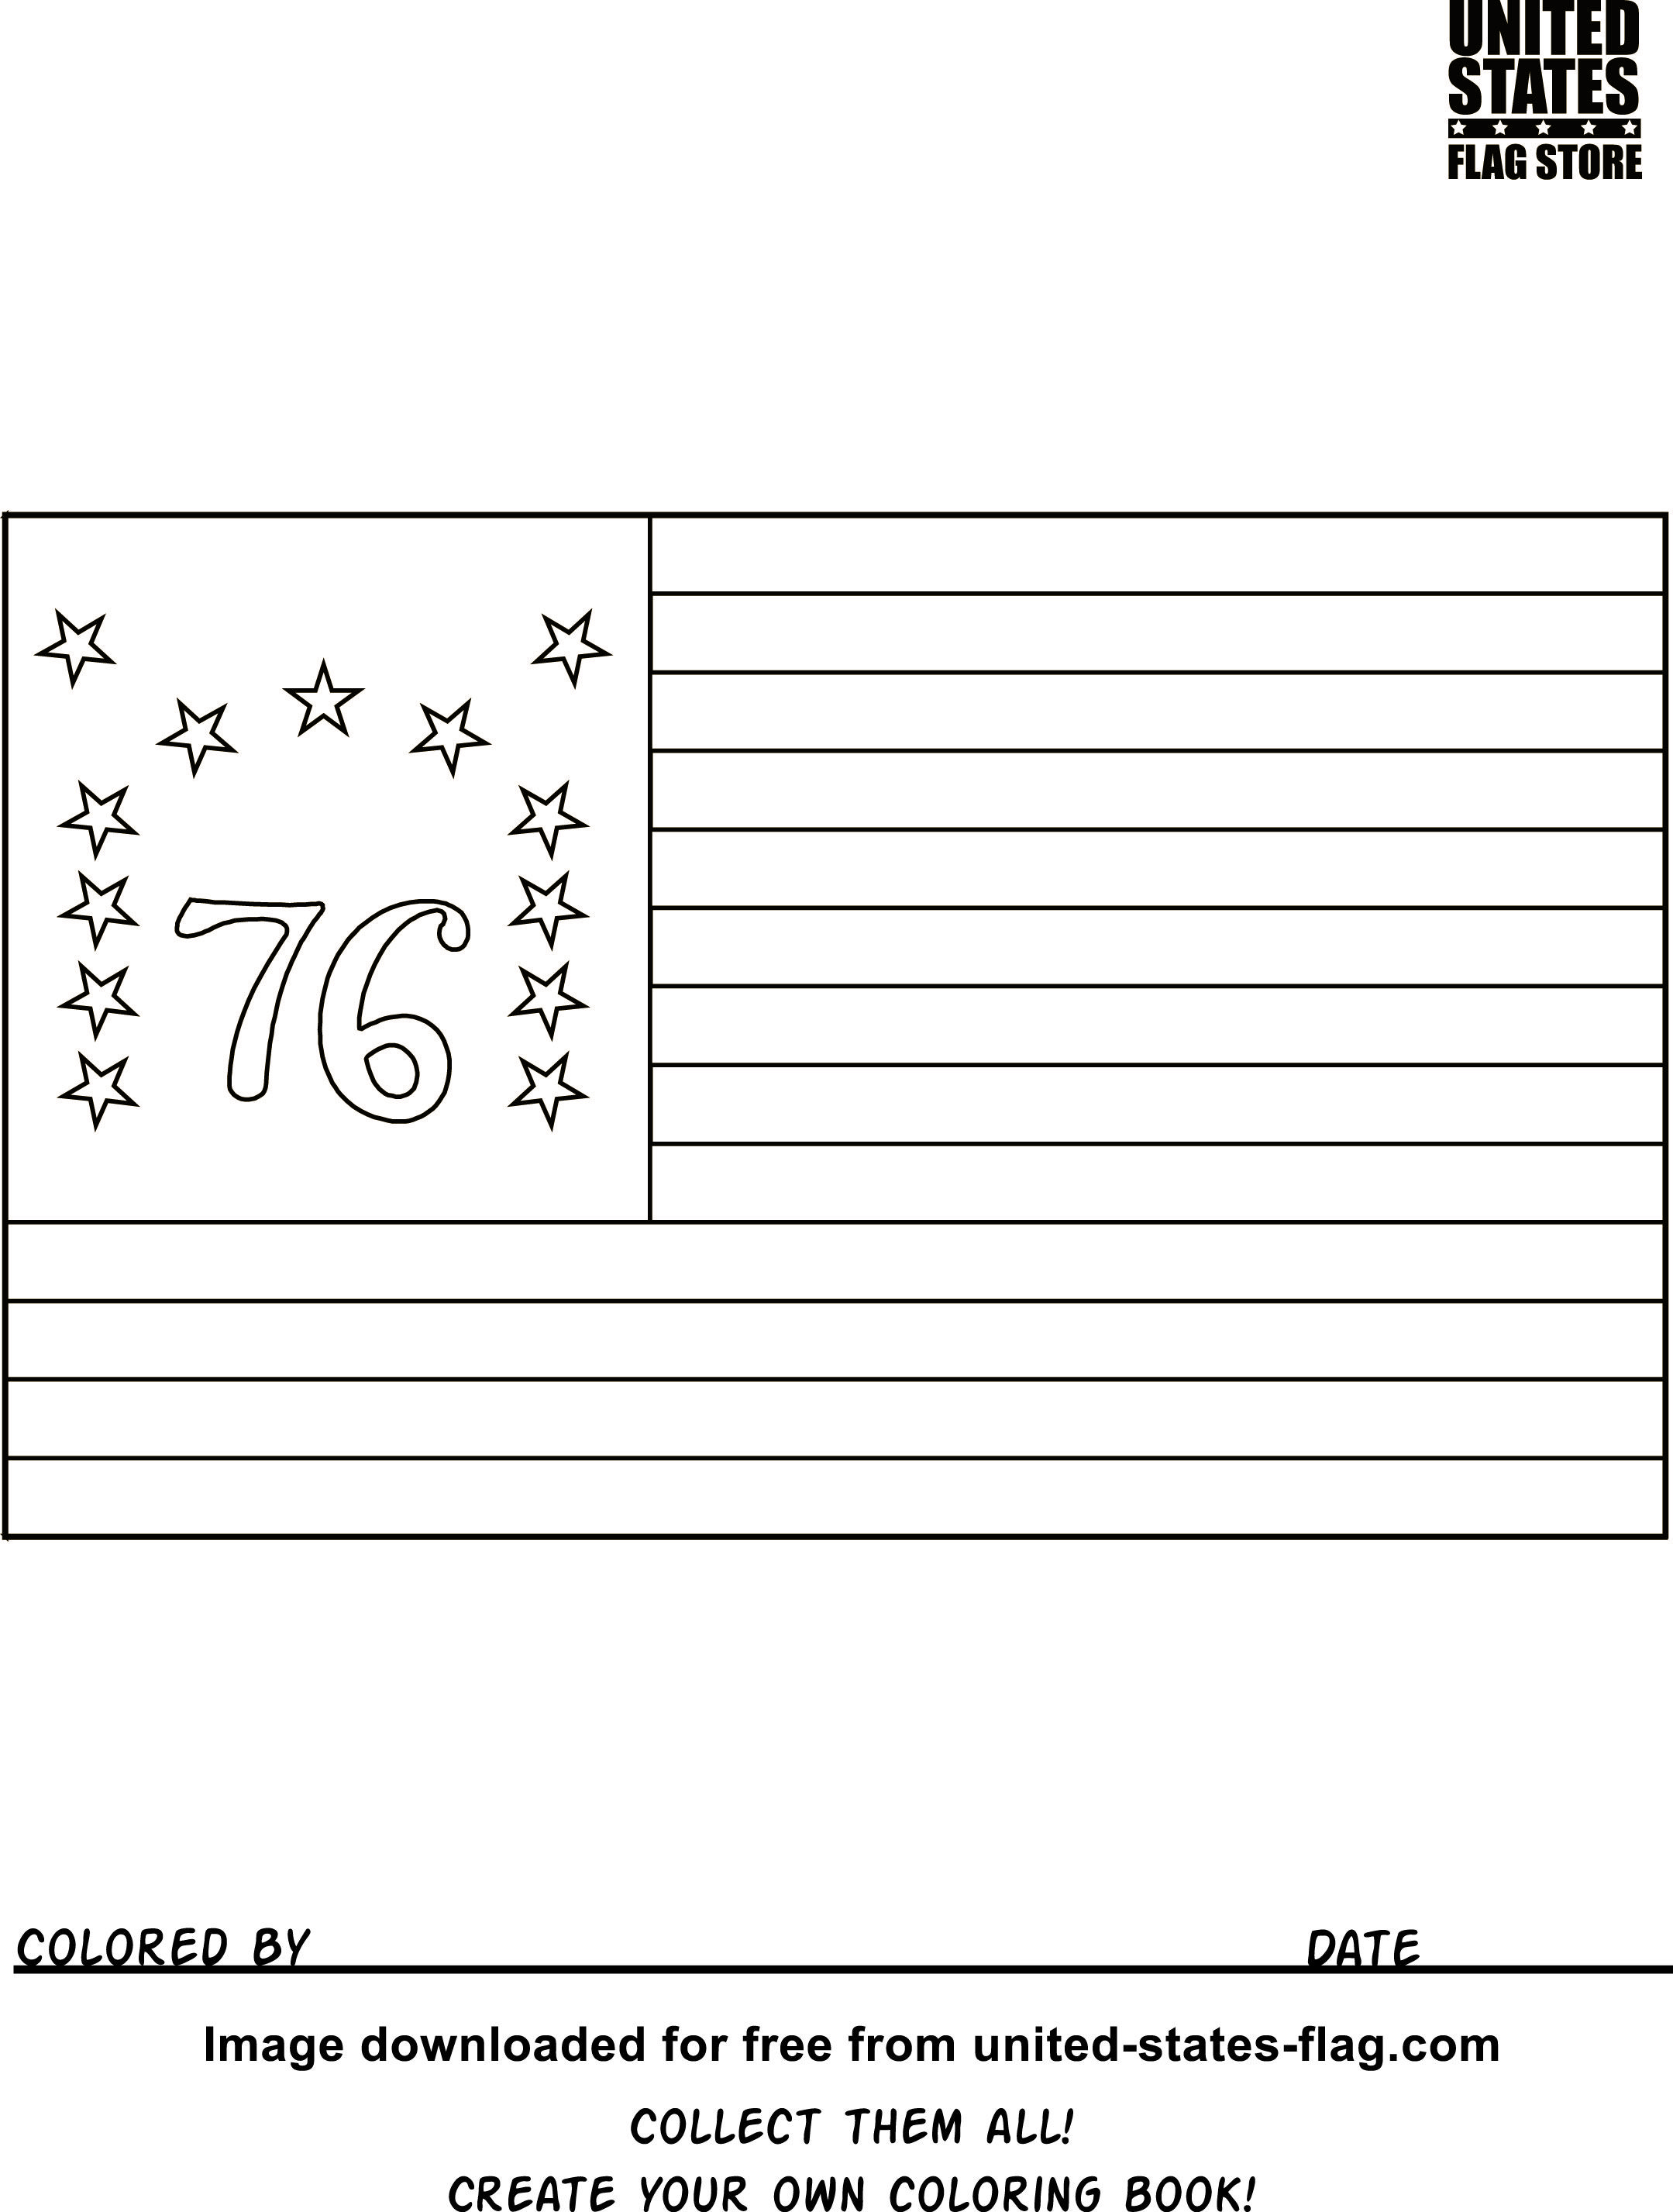 Bennington Flag Coloring Page Google Search Flag Coloring